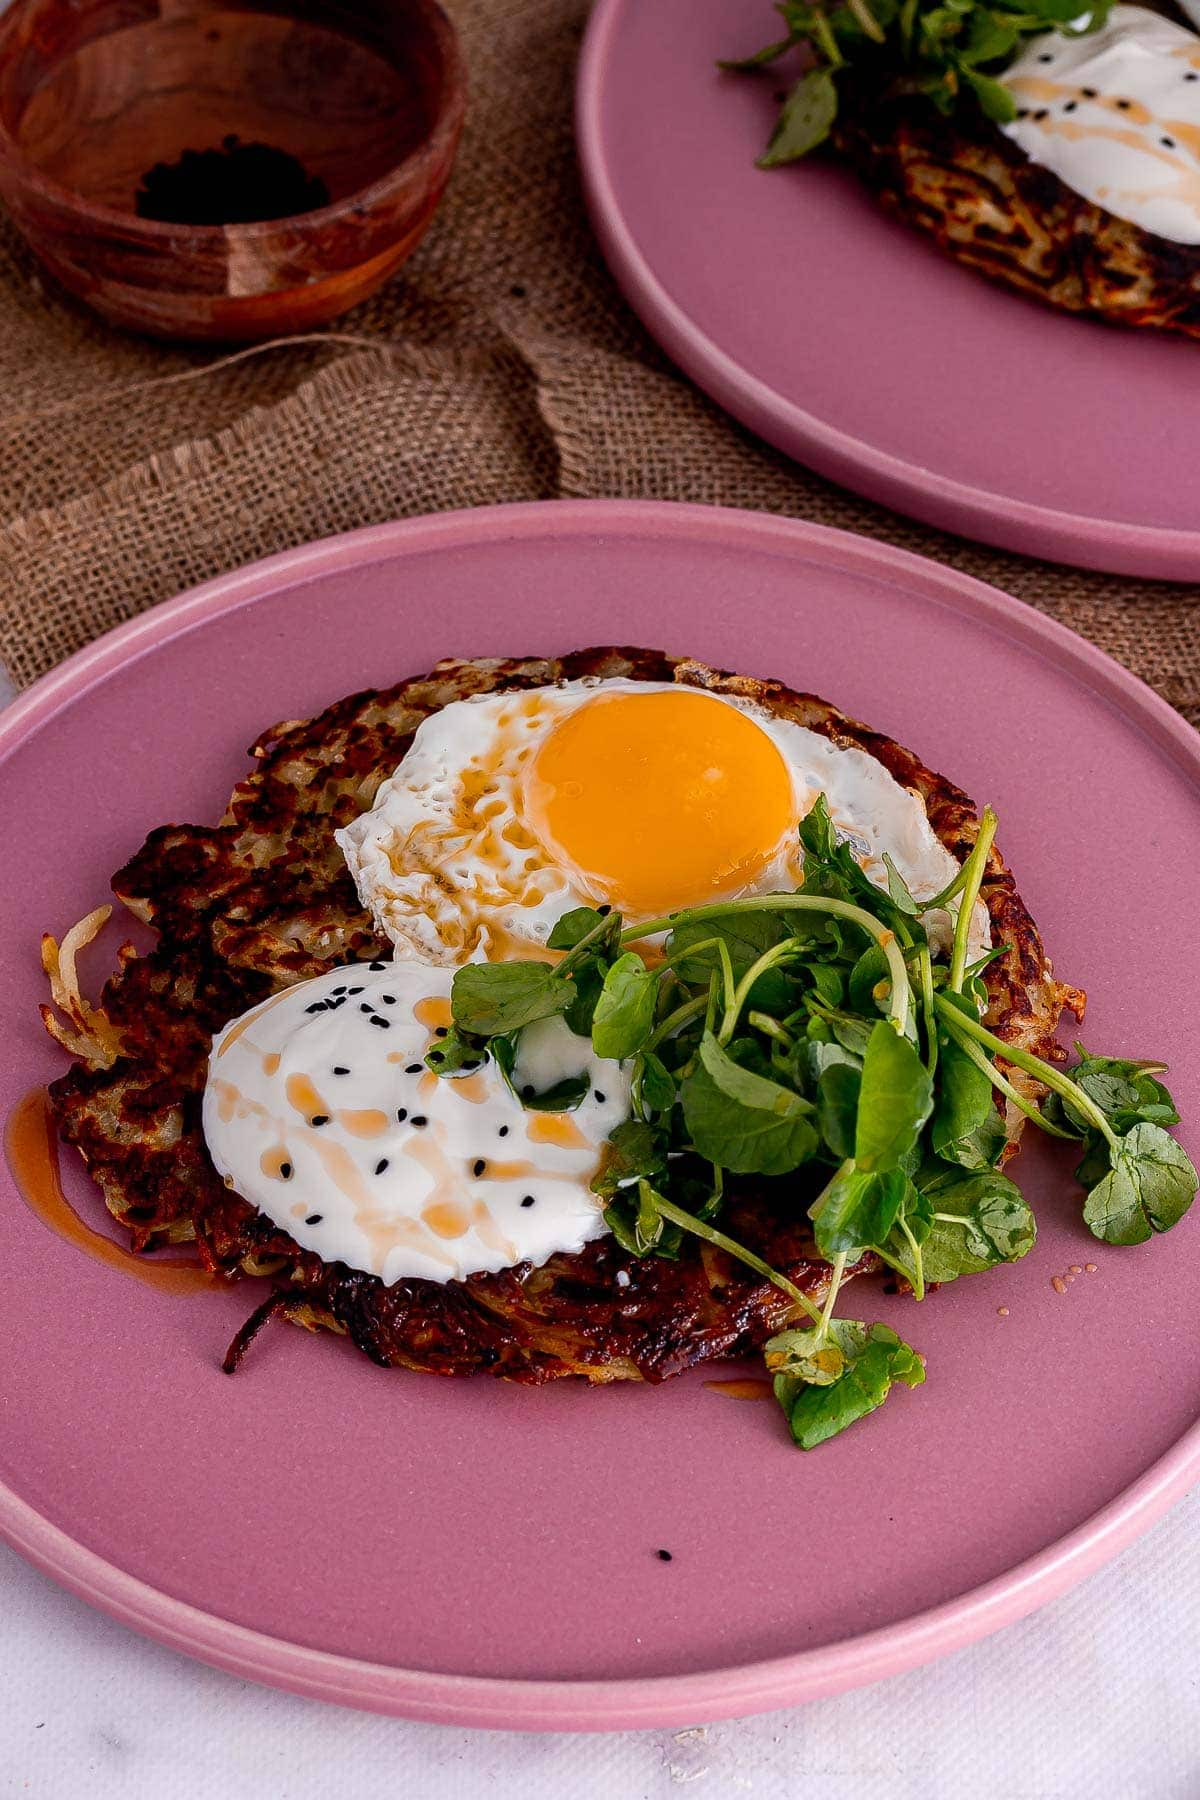 Pink plate of halloumi and potato cake with greens and eggs